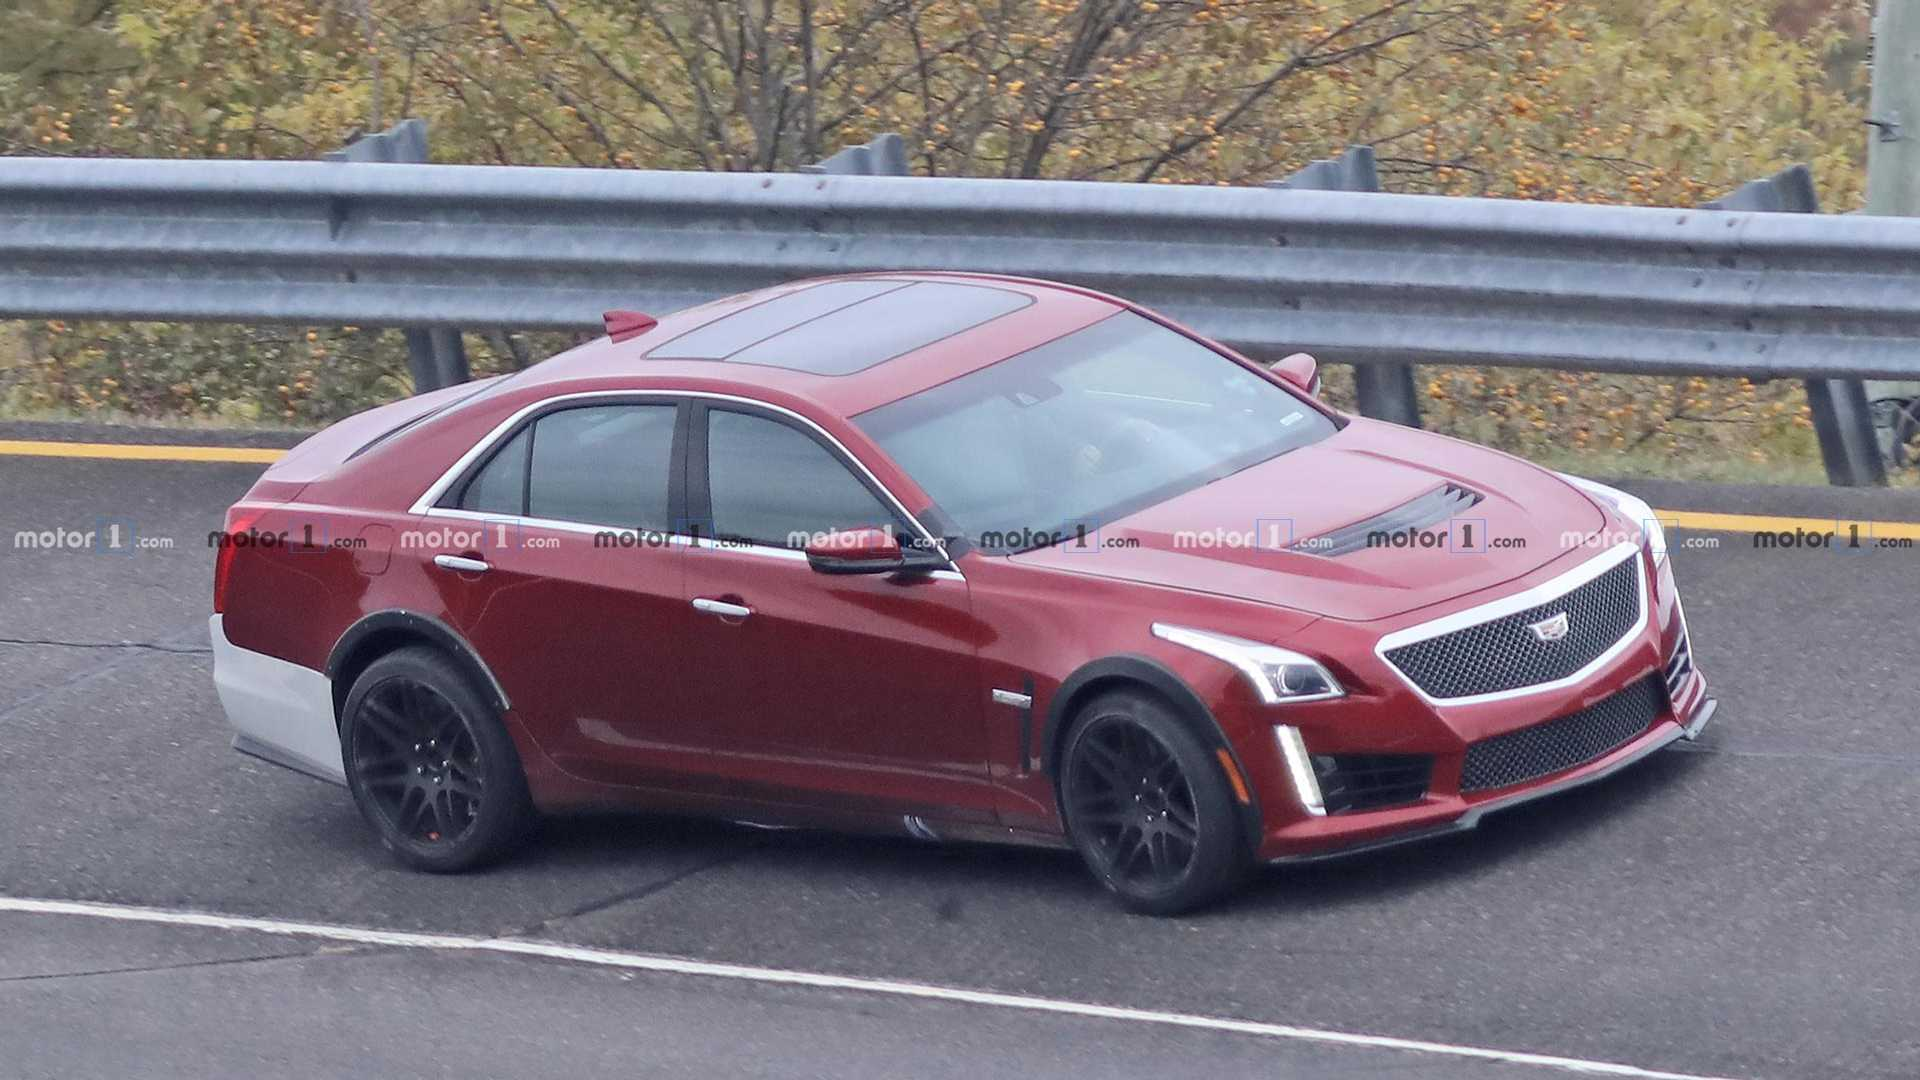 79 Concept of 2020 Cadillac Cts V Horsepower Model for 2020 Cadillac Cts V Horsepower